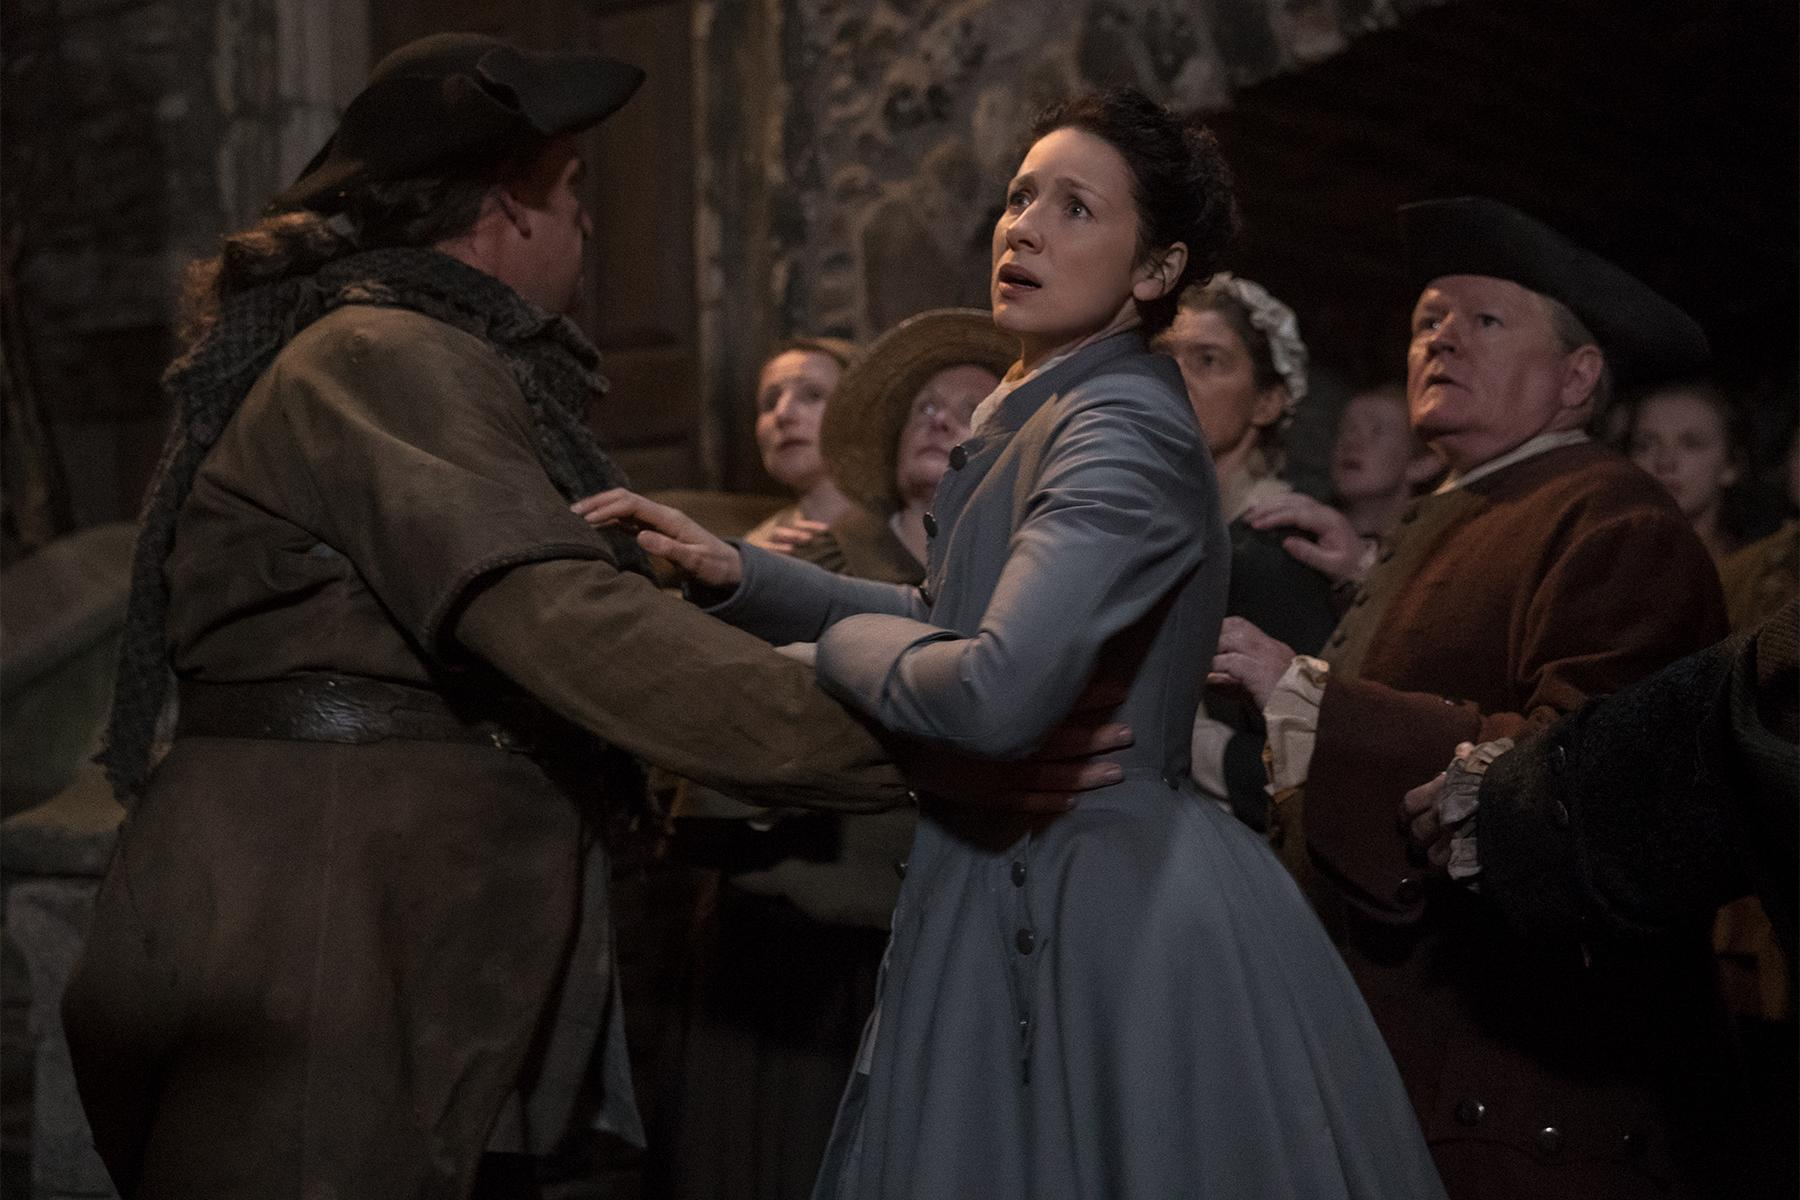 Watch Outlander season 3, episode 7 online